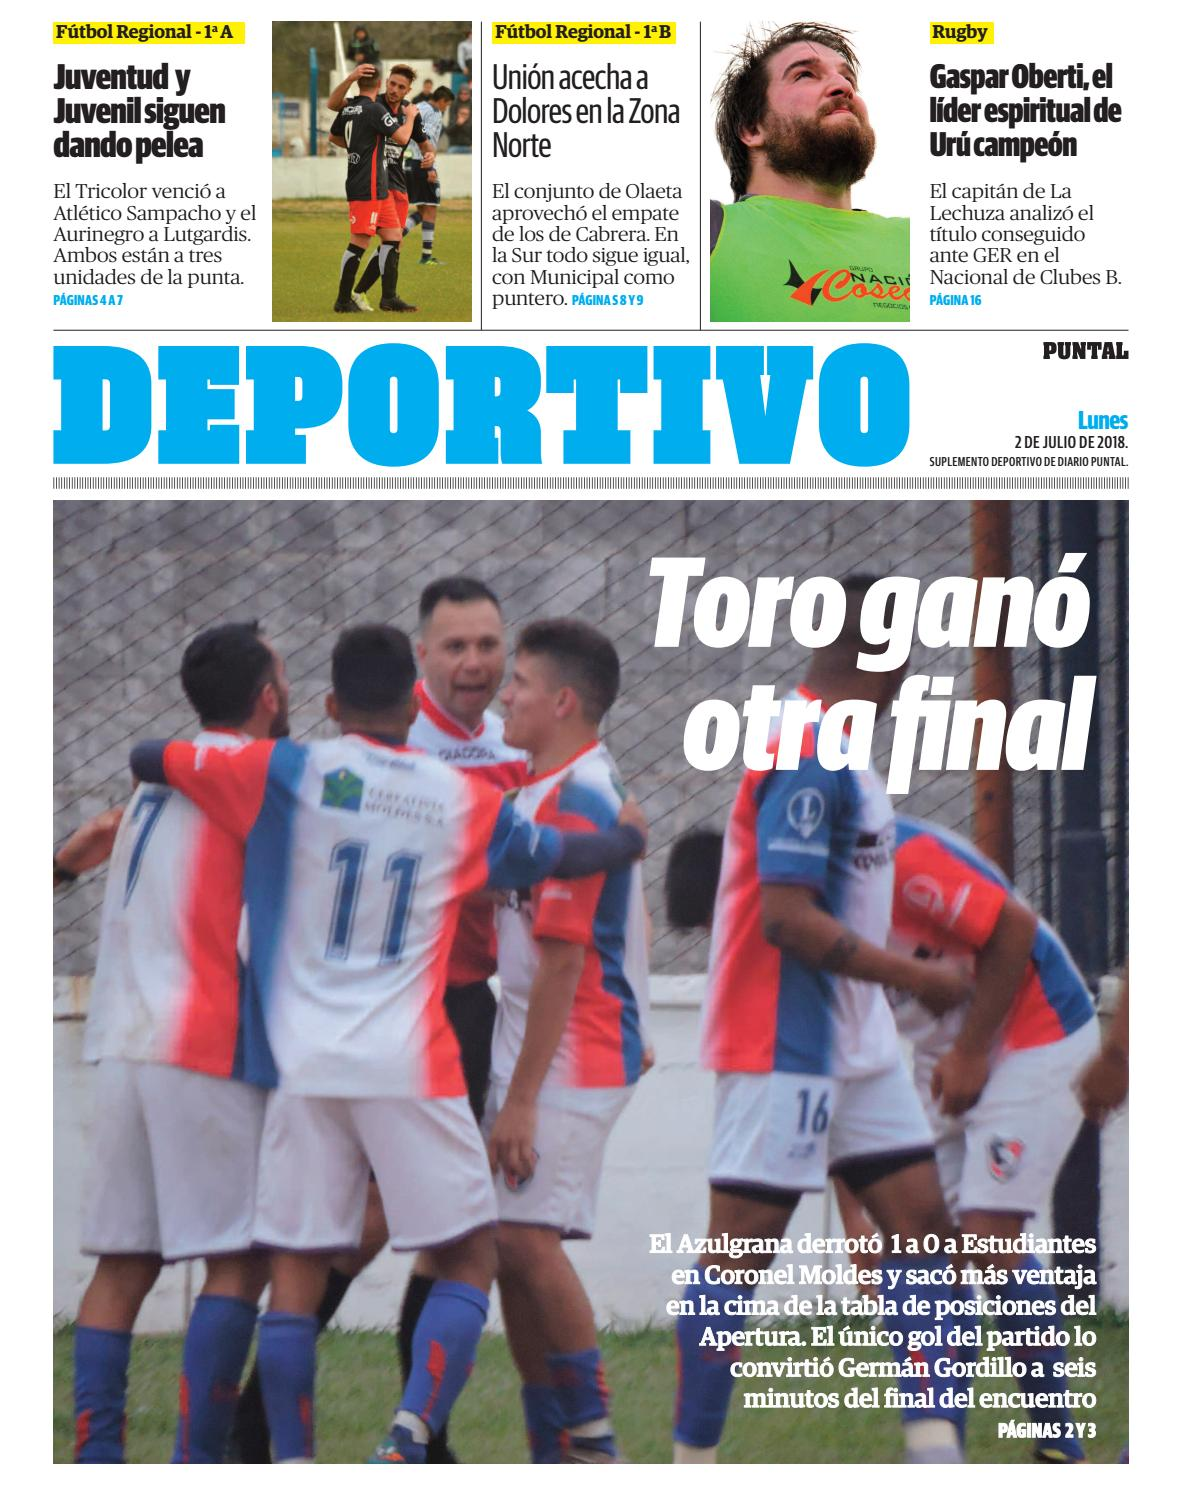 Puntal - Suplemento Deportivo (02/07/2018) by Puntal - issuu